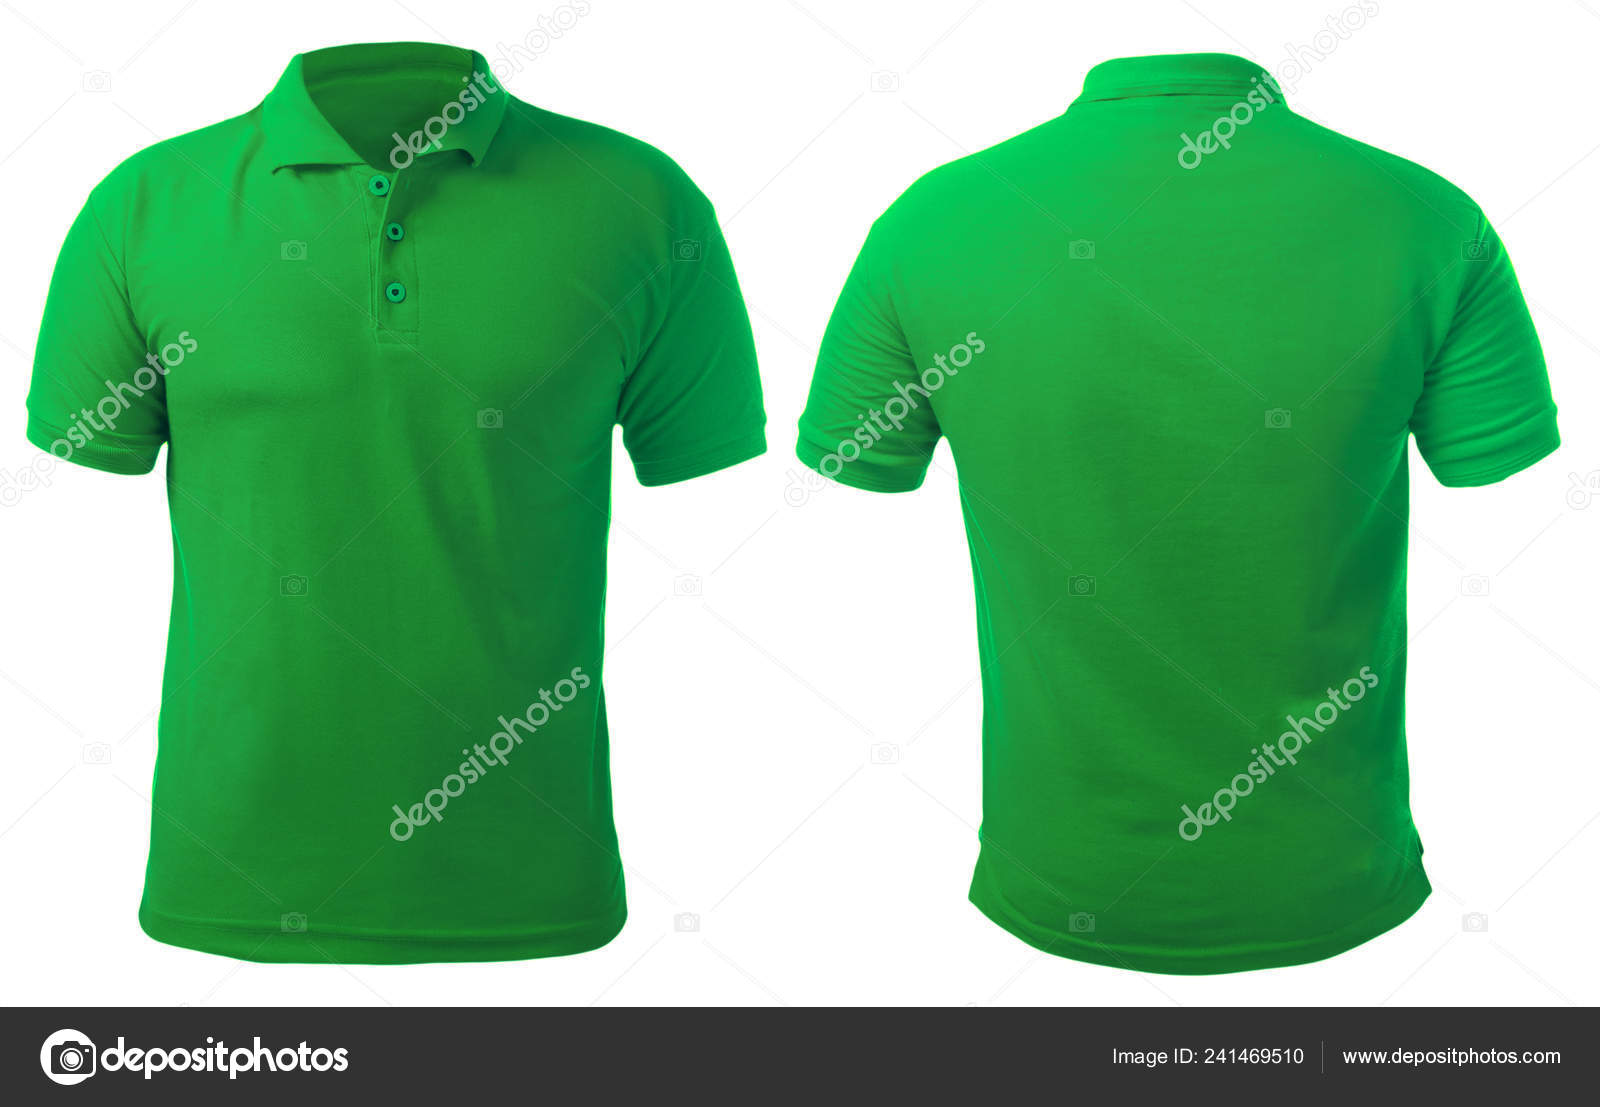 70272e43e Blank collared shirt mock up template, front and back view, isolated on  white, plain green t-shirt mockup. Polo tee design presentation for print.